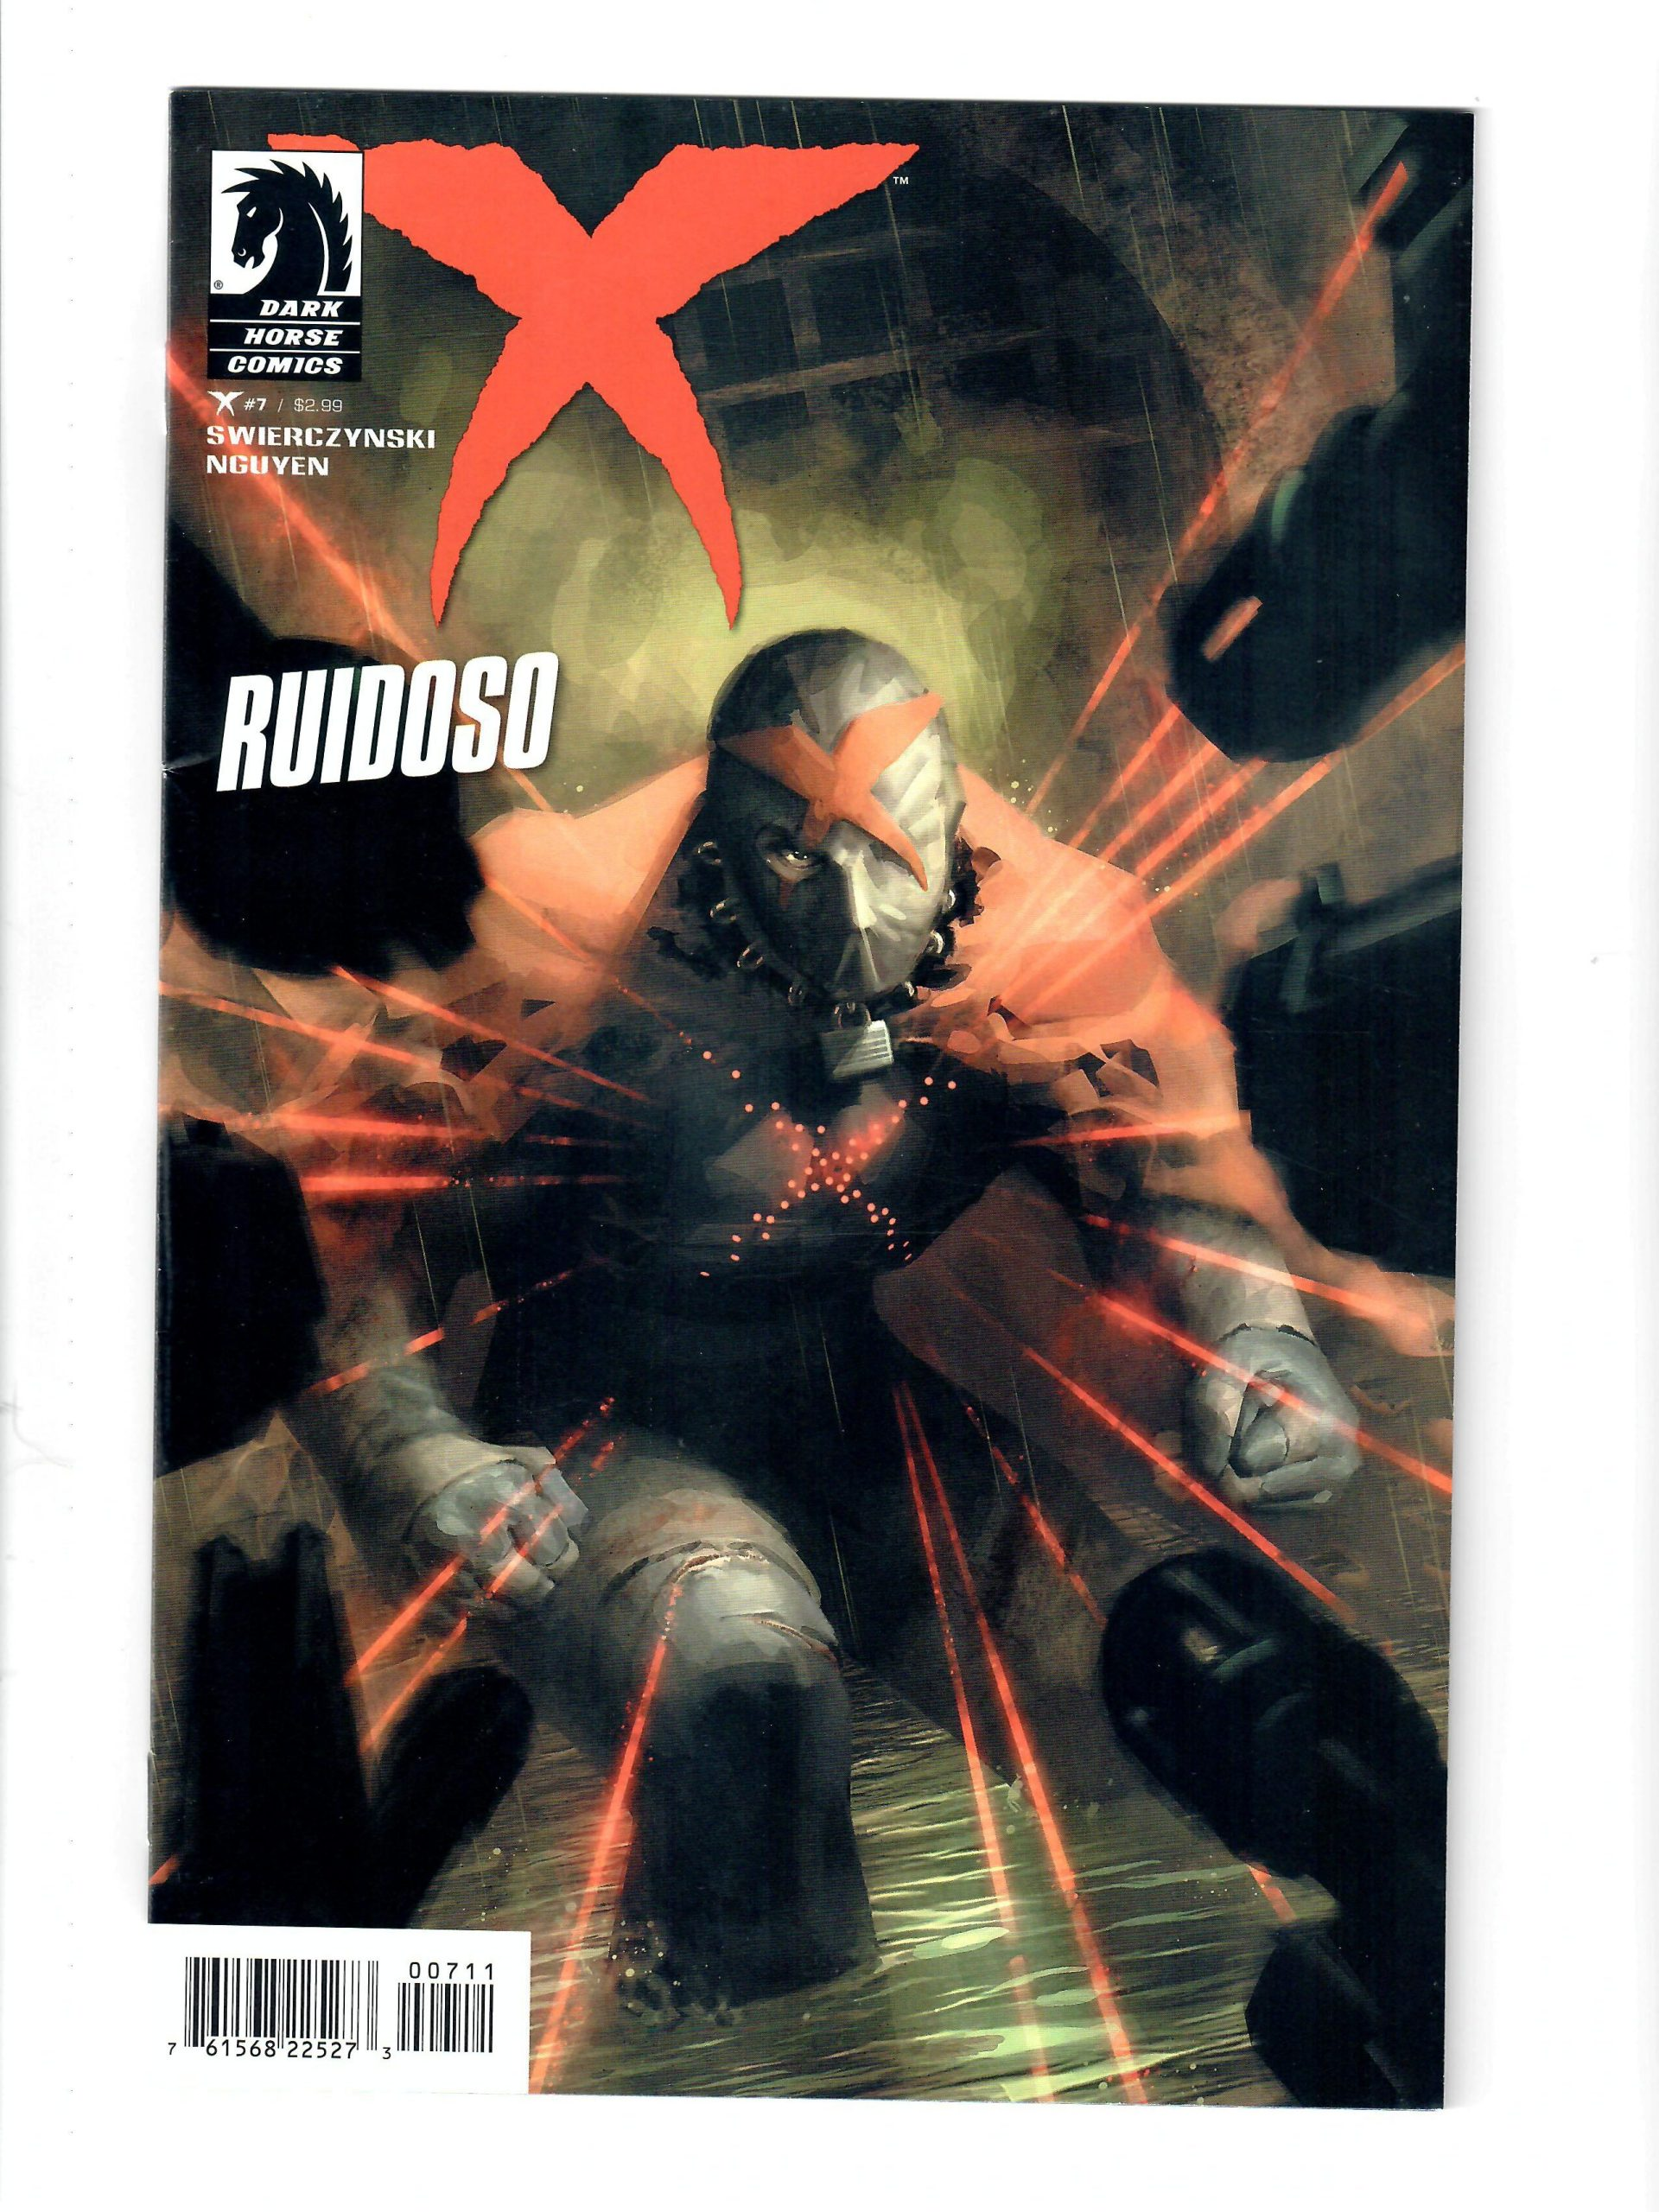 DARK HORSE COMICS X RUIDOSO #7 NOV 2013 COMIC #159220-7